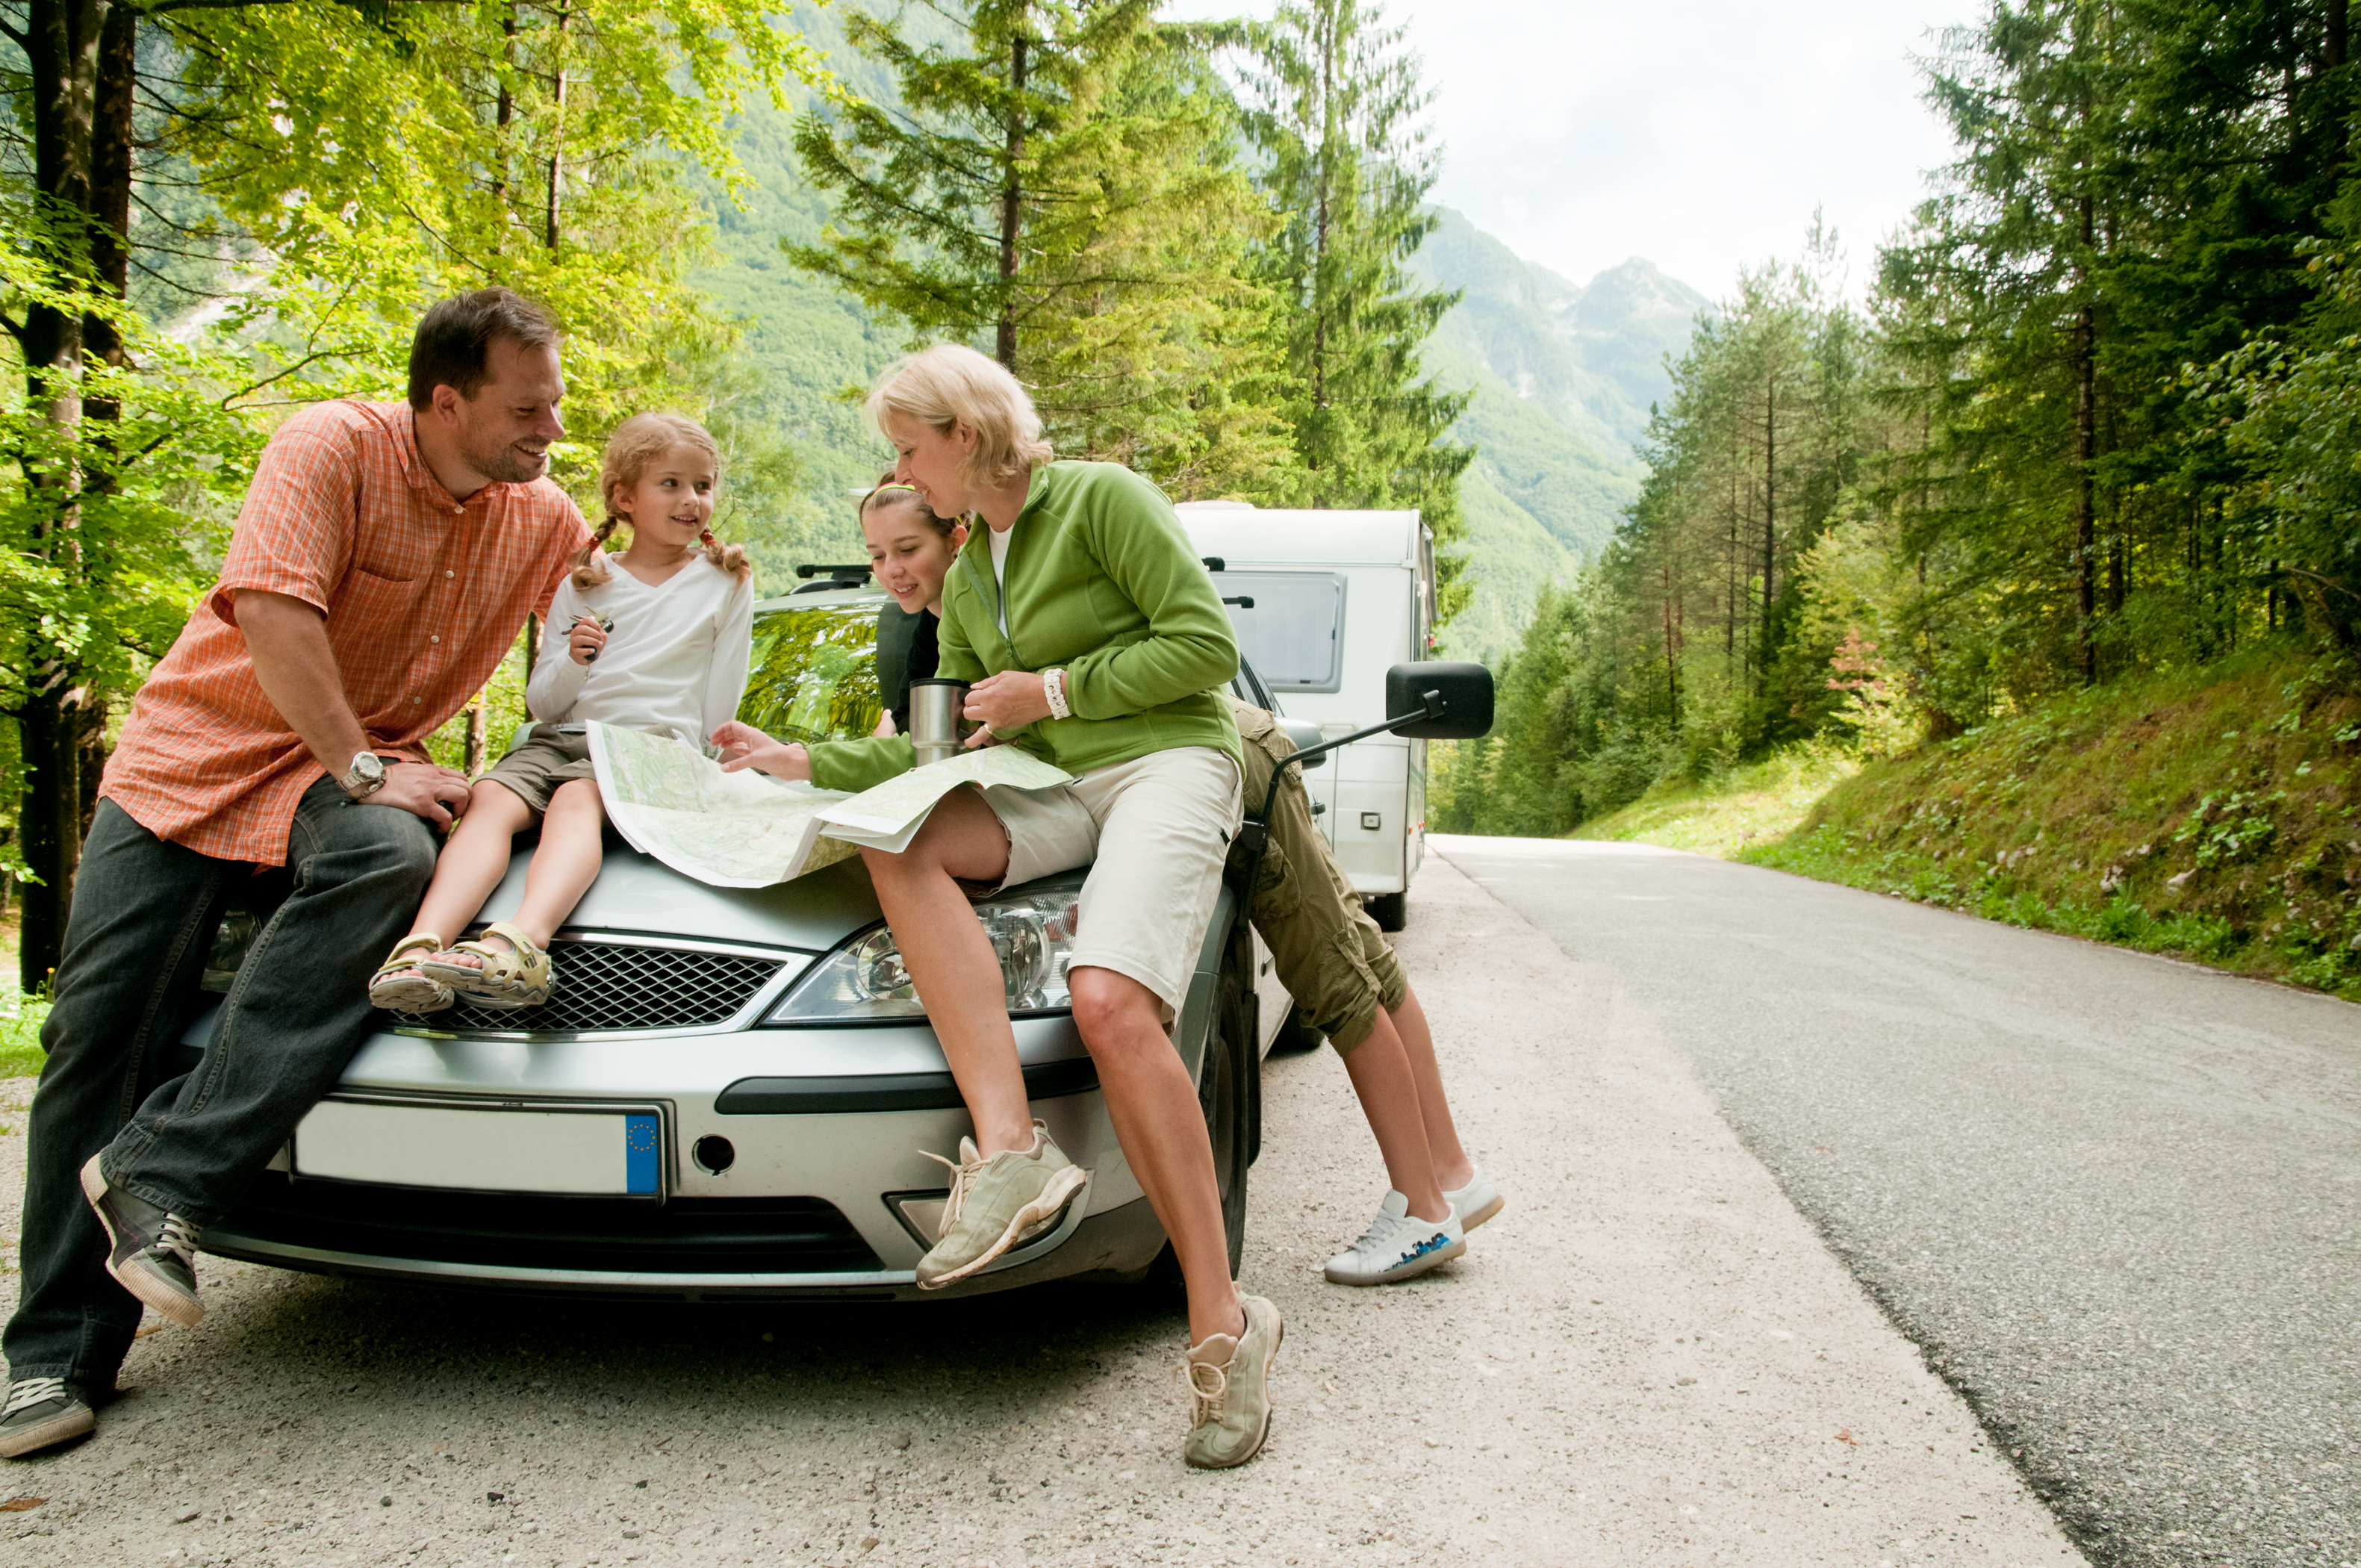 a memorable vacation Vacation is a great time to try new foods together whether you're grilling at your cabin, or dining at a family-friendly establishment, encourage family members to branch out from their normal eating habits.